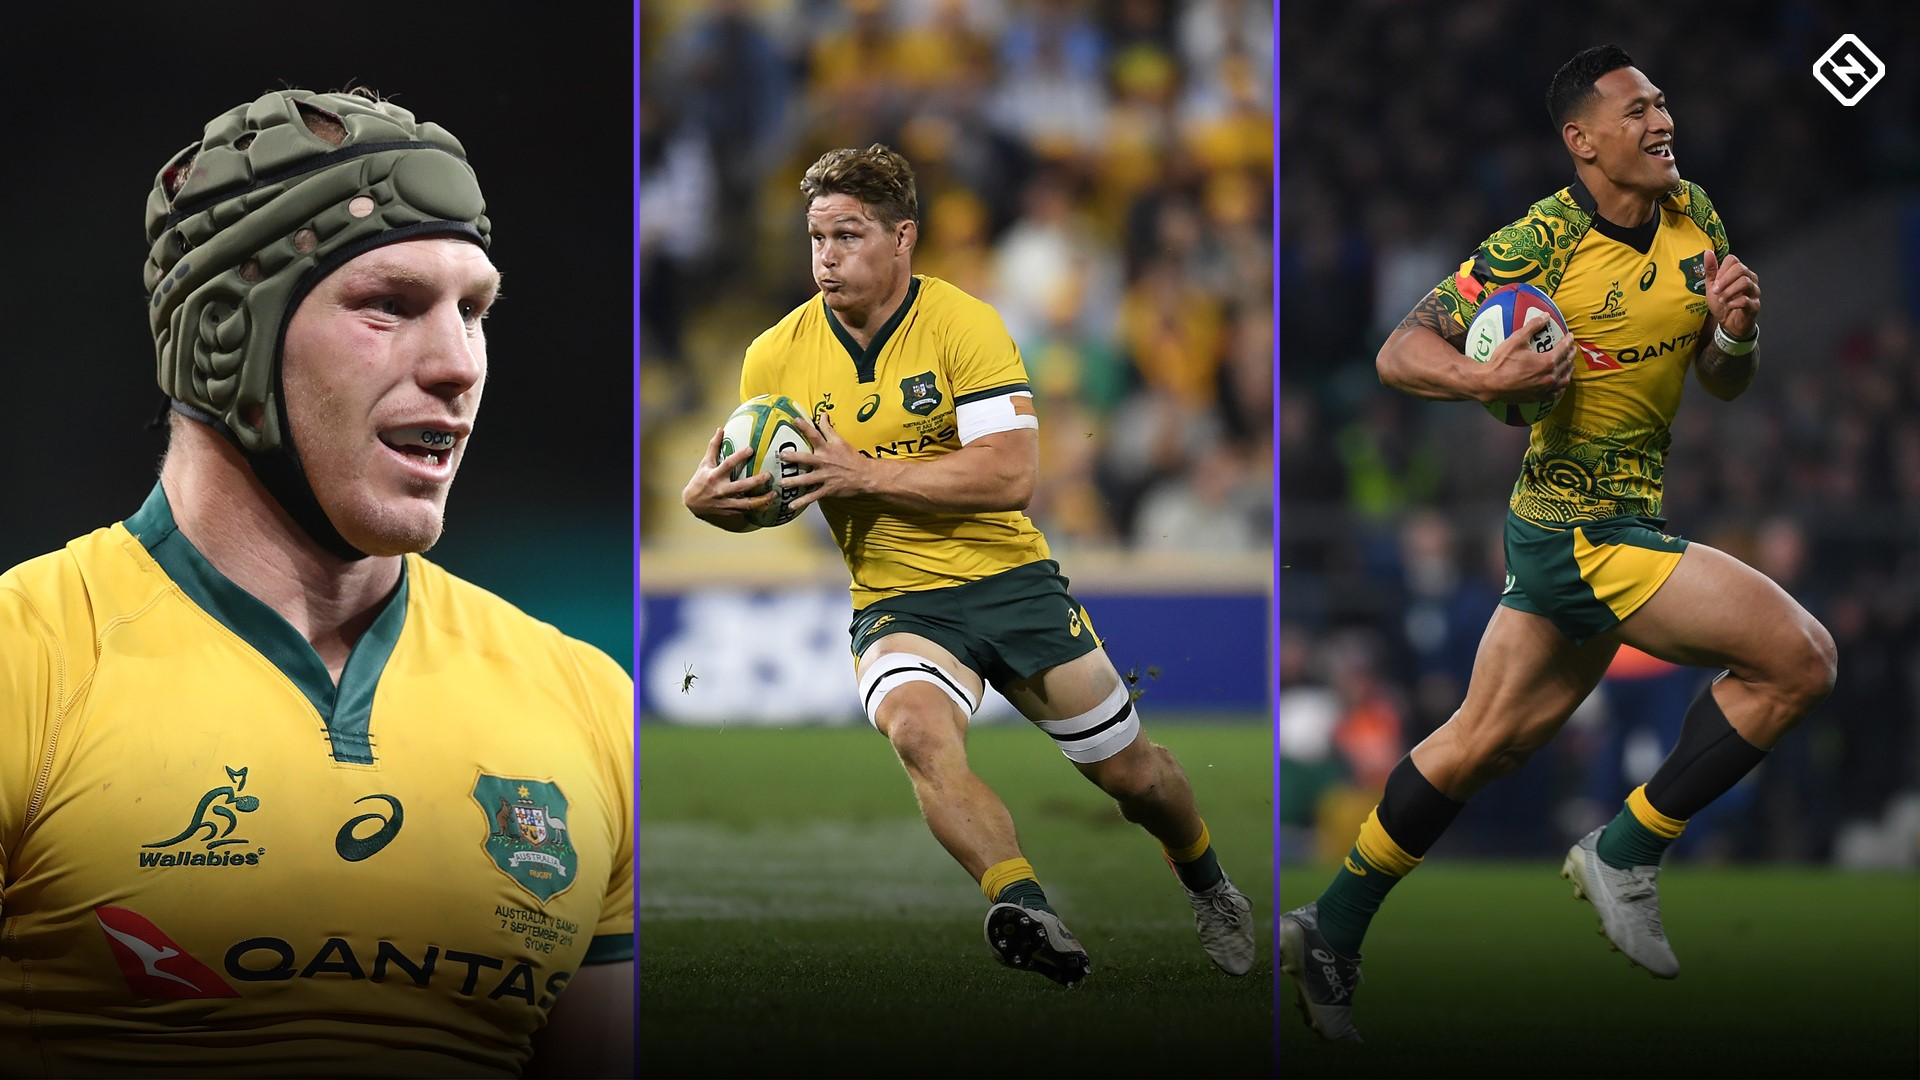 Wallabies Xv Of The Decade 2010 2019 Sporting News Australia